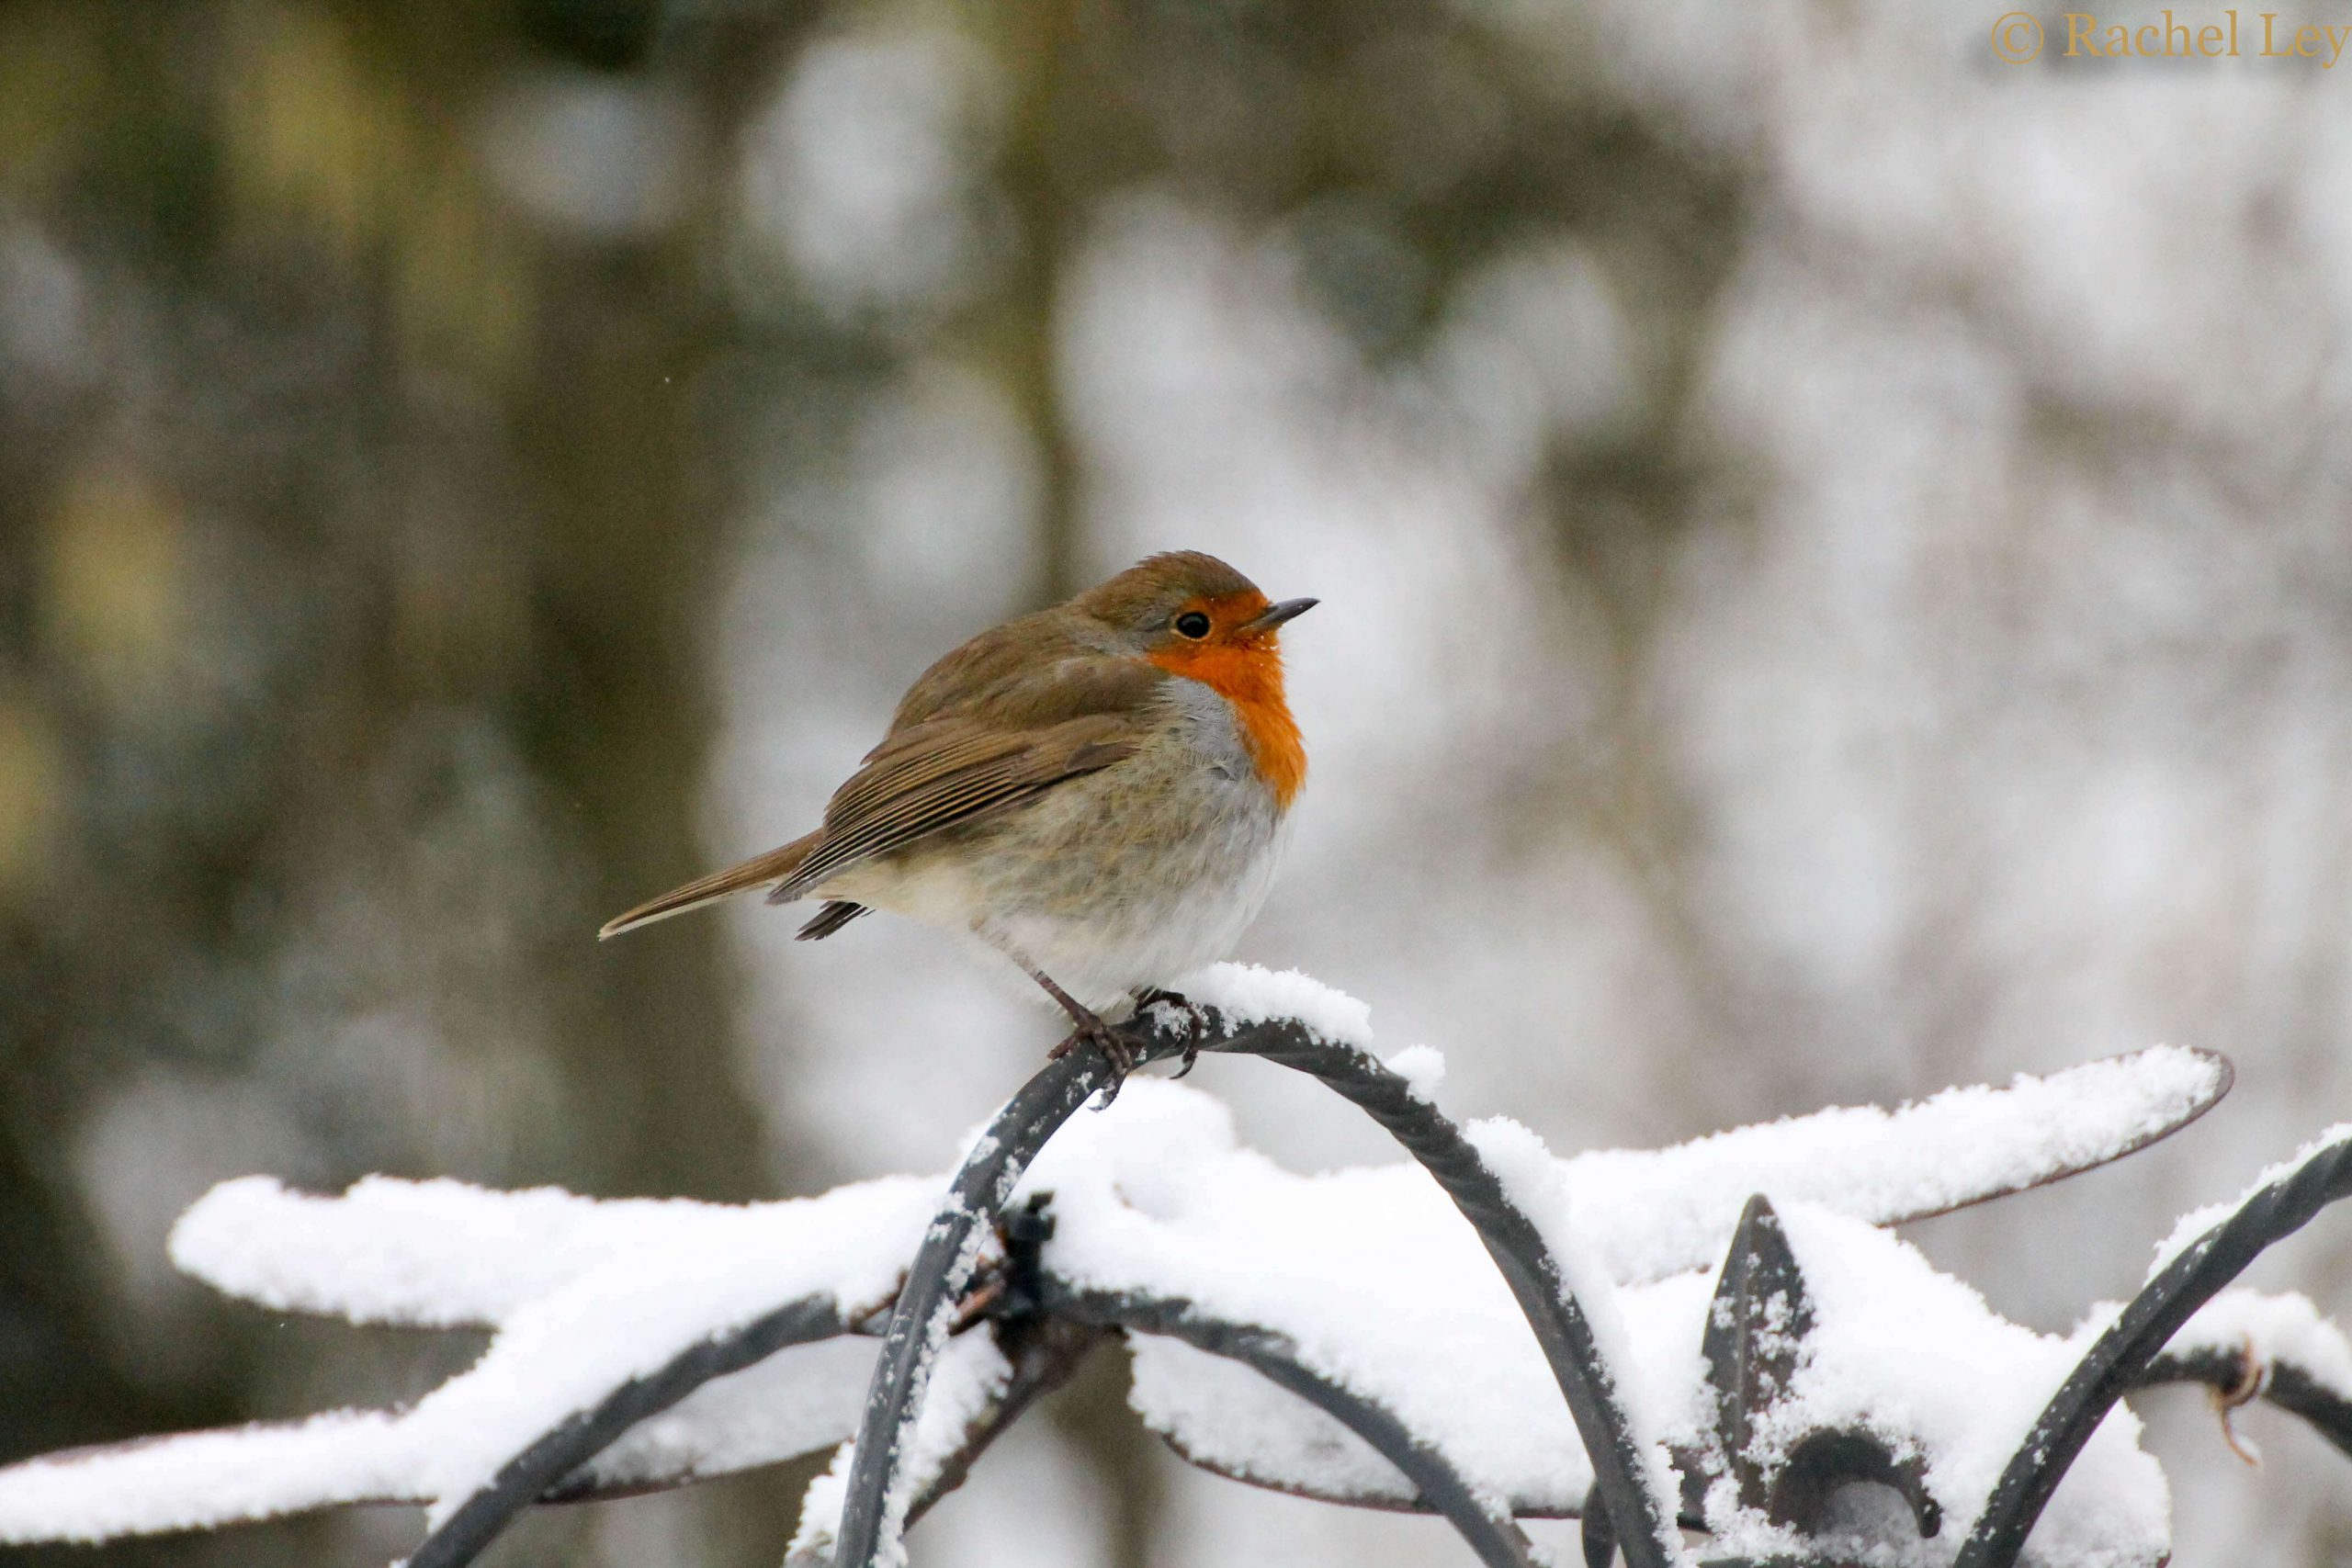 Robin sat on the top of the bird table in the snow.